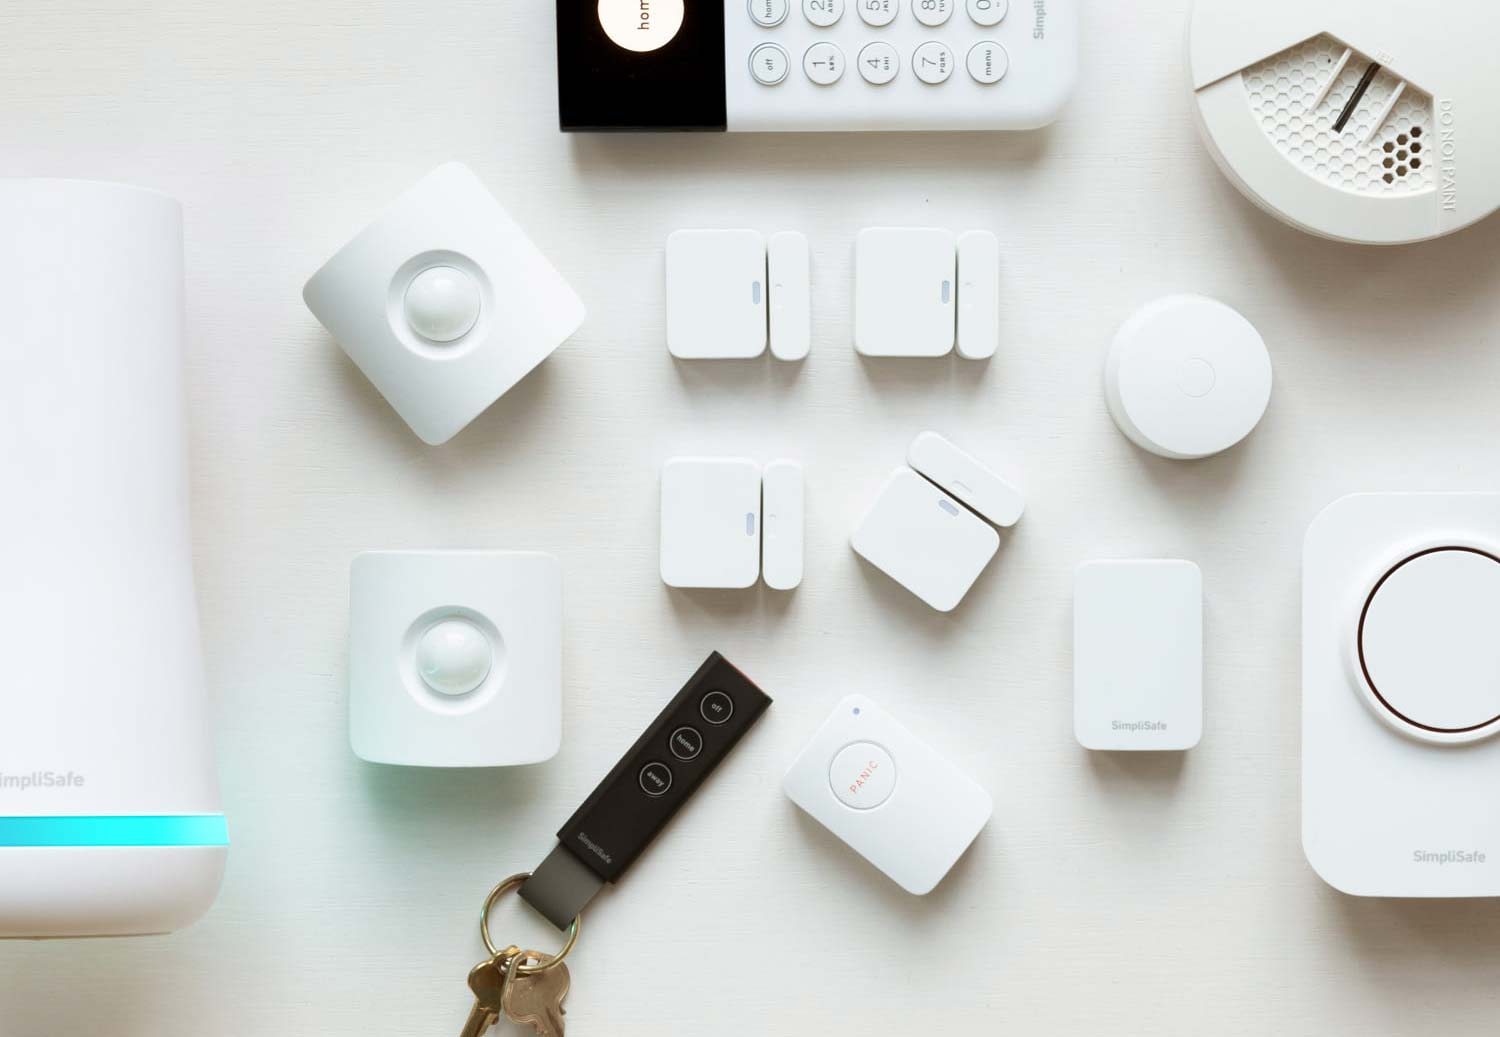 Best Diy Home Security Systems In 2020 Tom S Guide